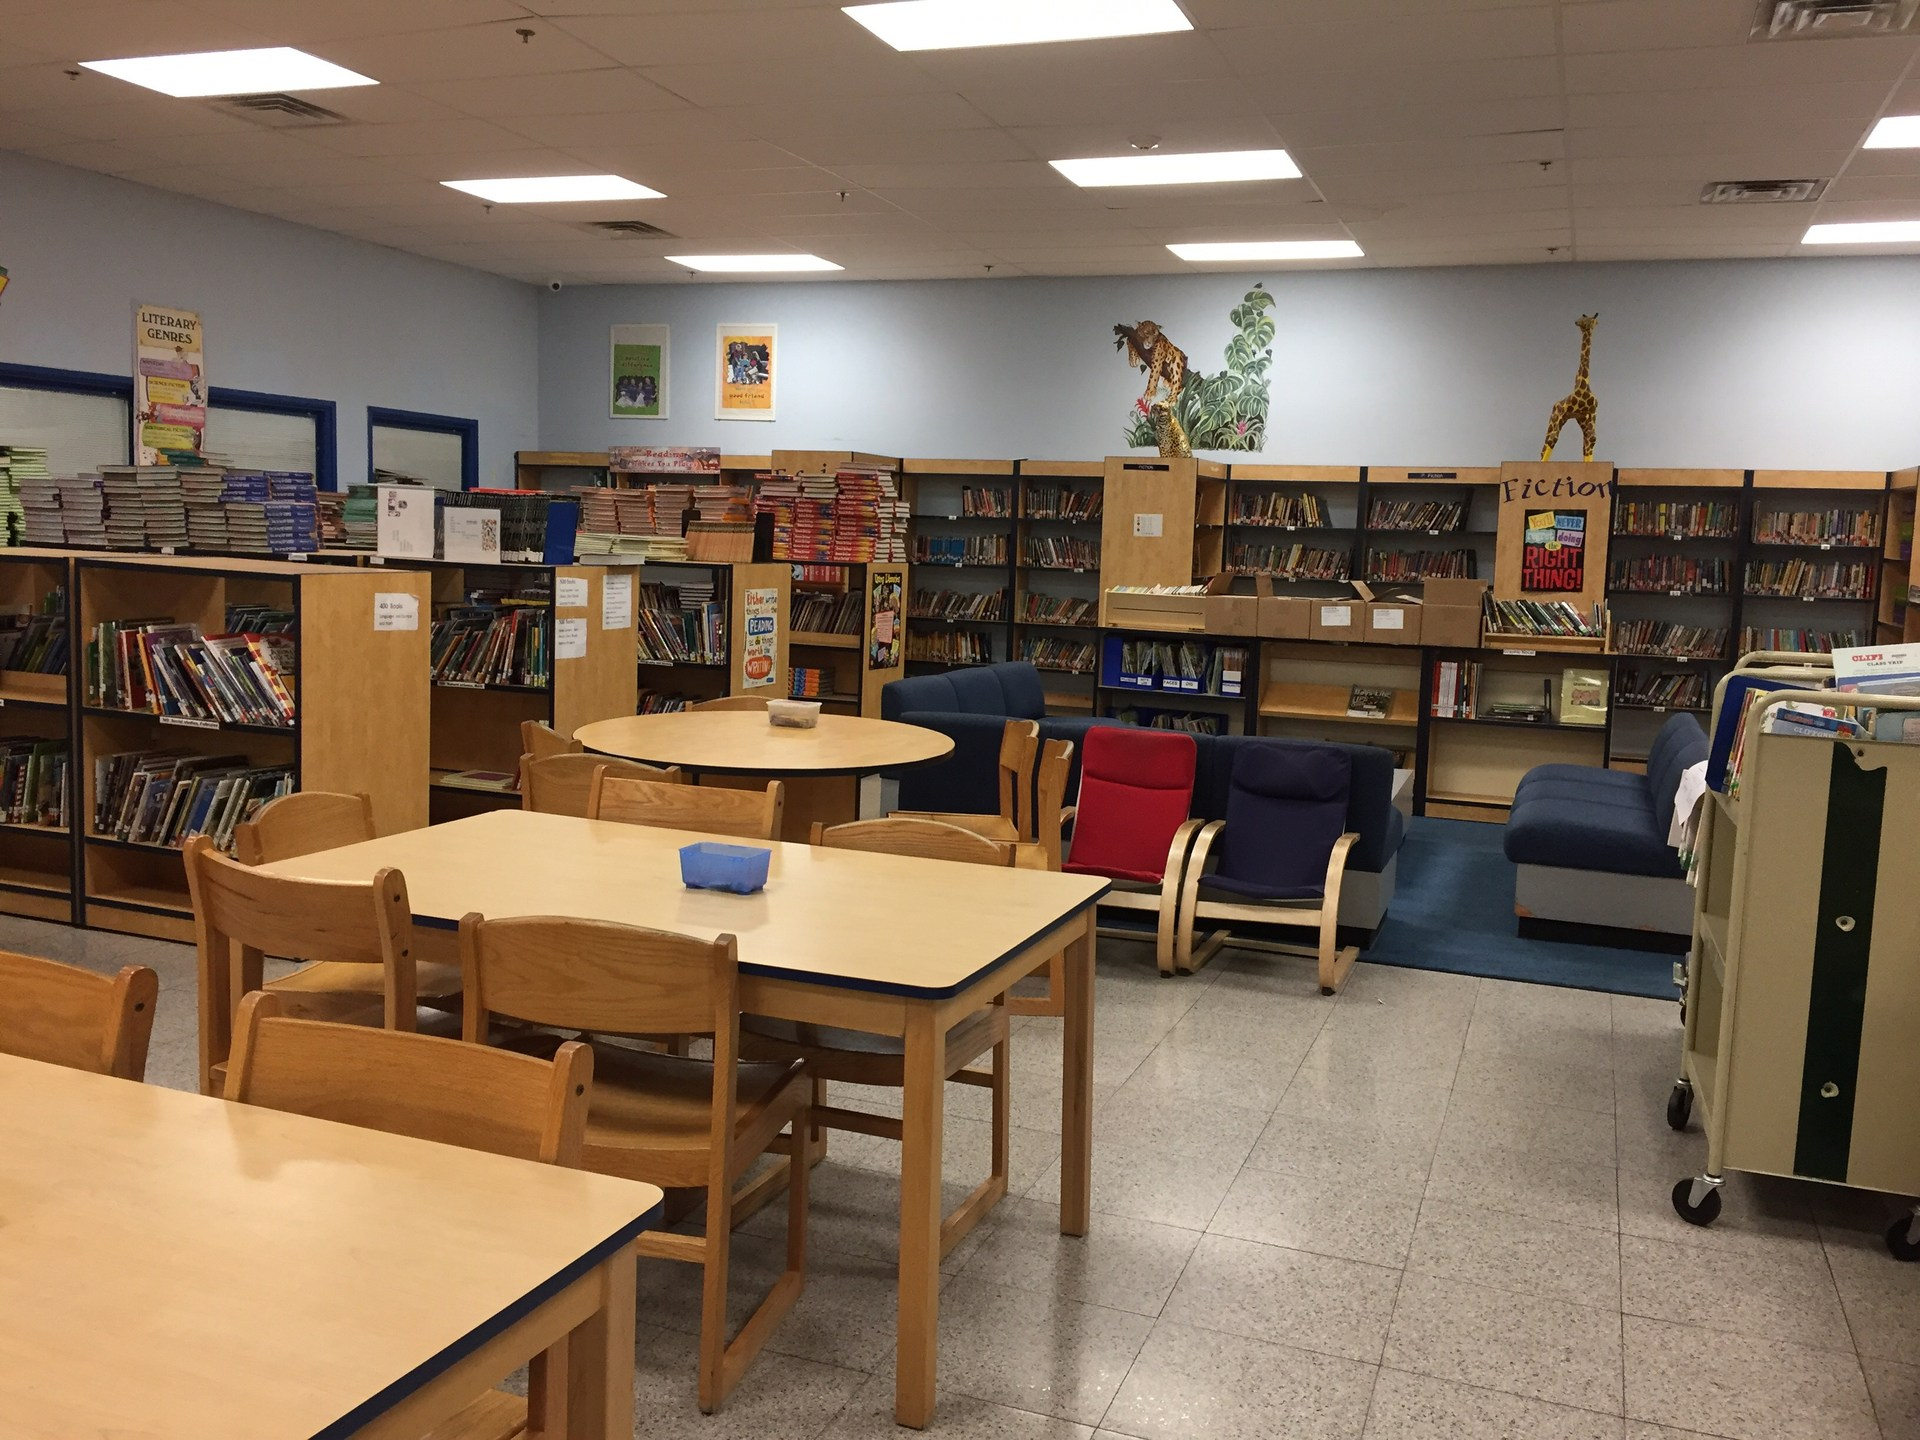 PCSST 2-6 school library